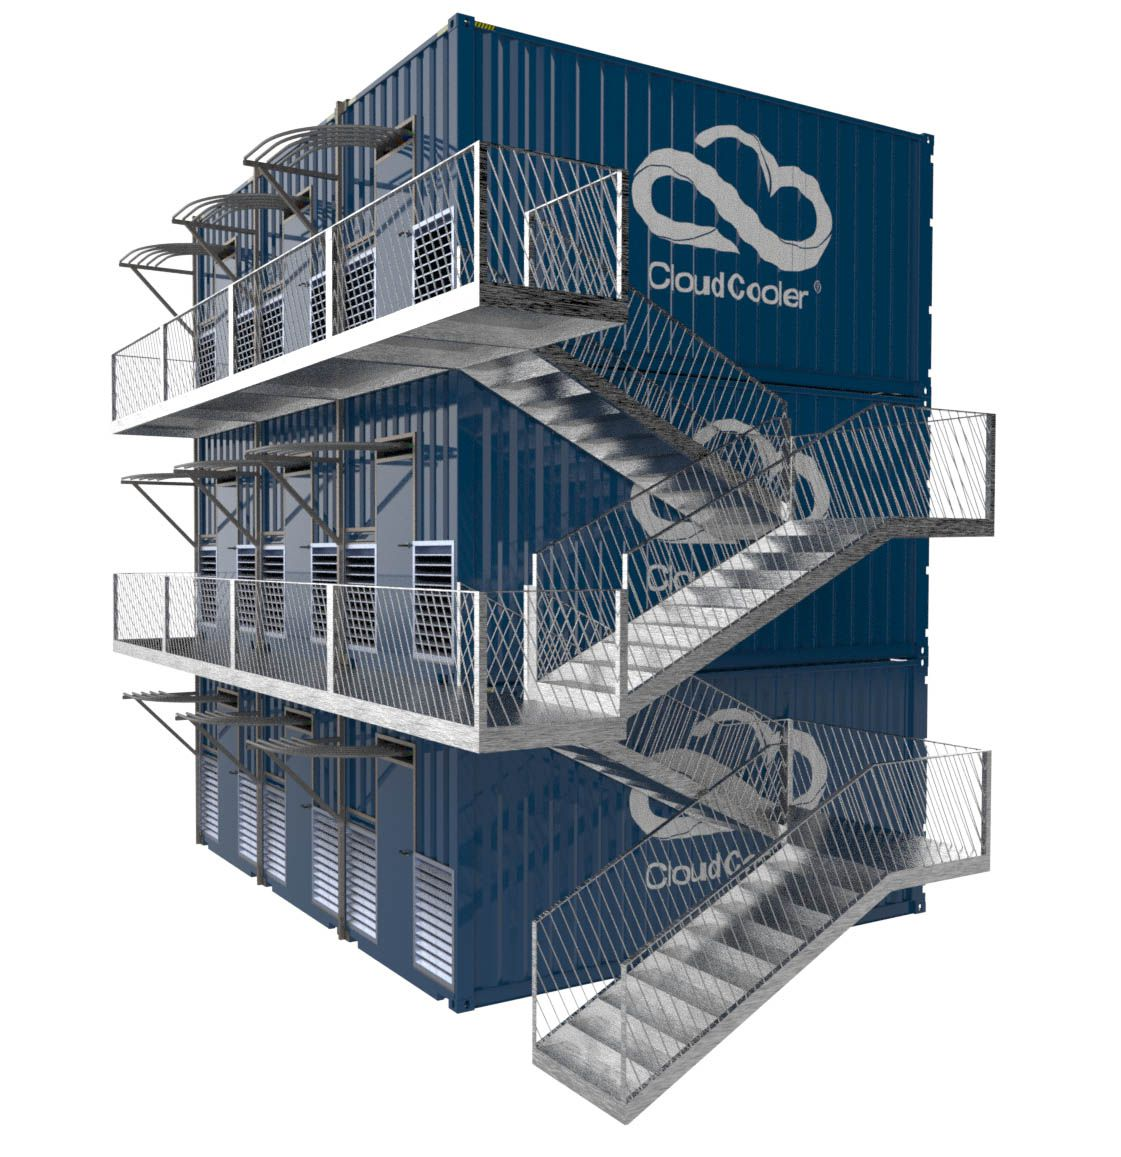 HPC Data Container. Modular prefab system to create a hyper scale data centre